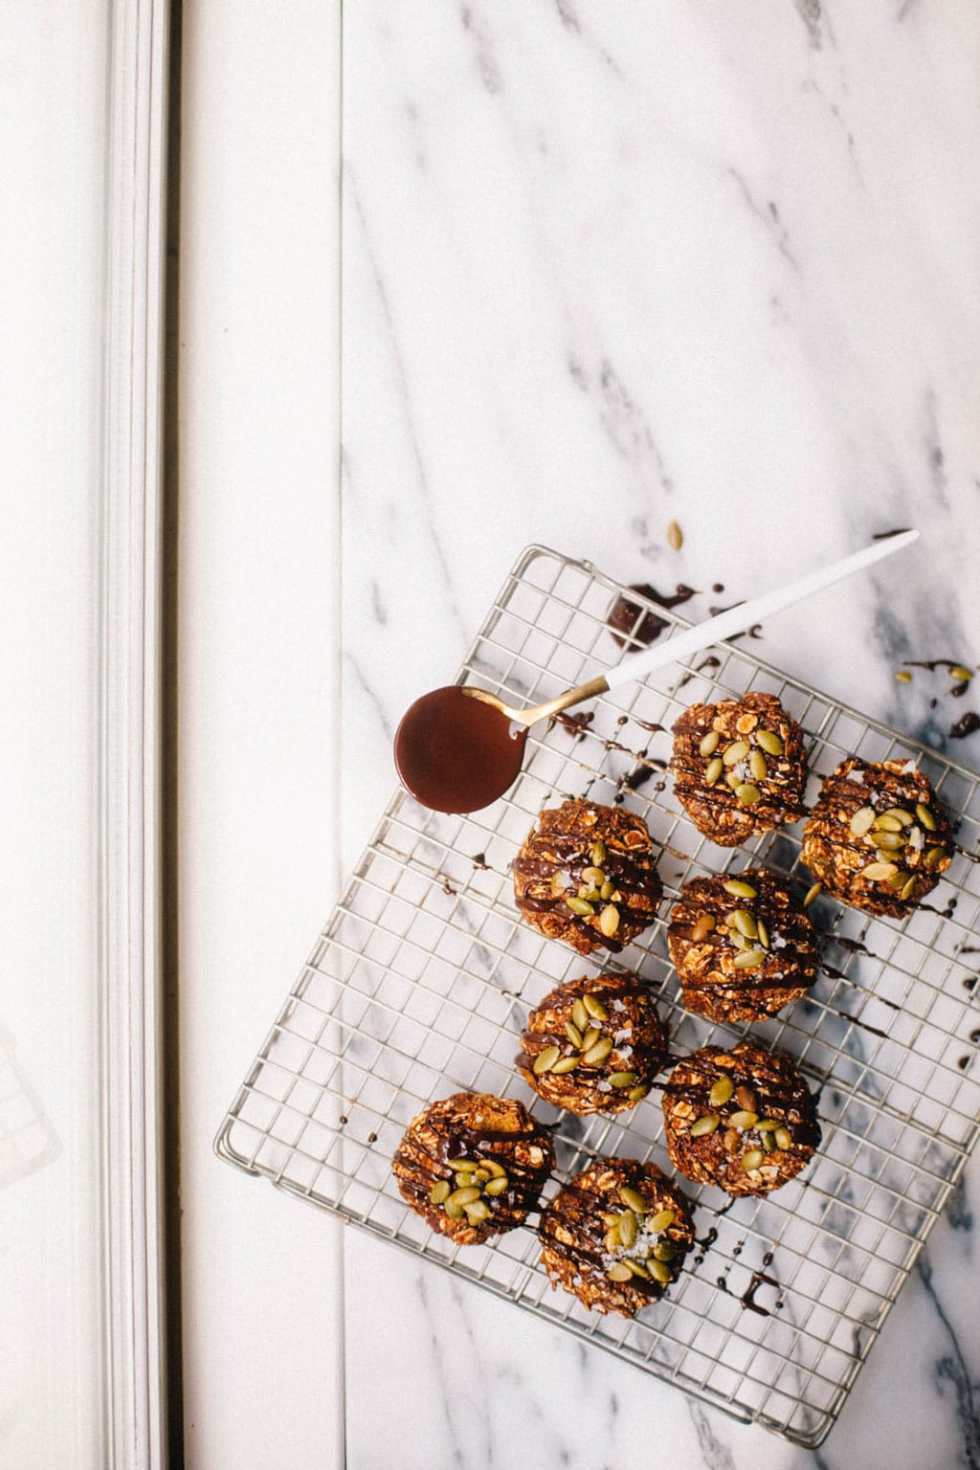 No Bake Love Crunch Cookies drizzled with chocolate and topped with pepitas